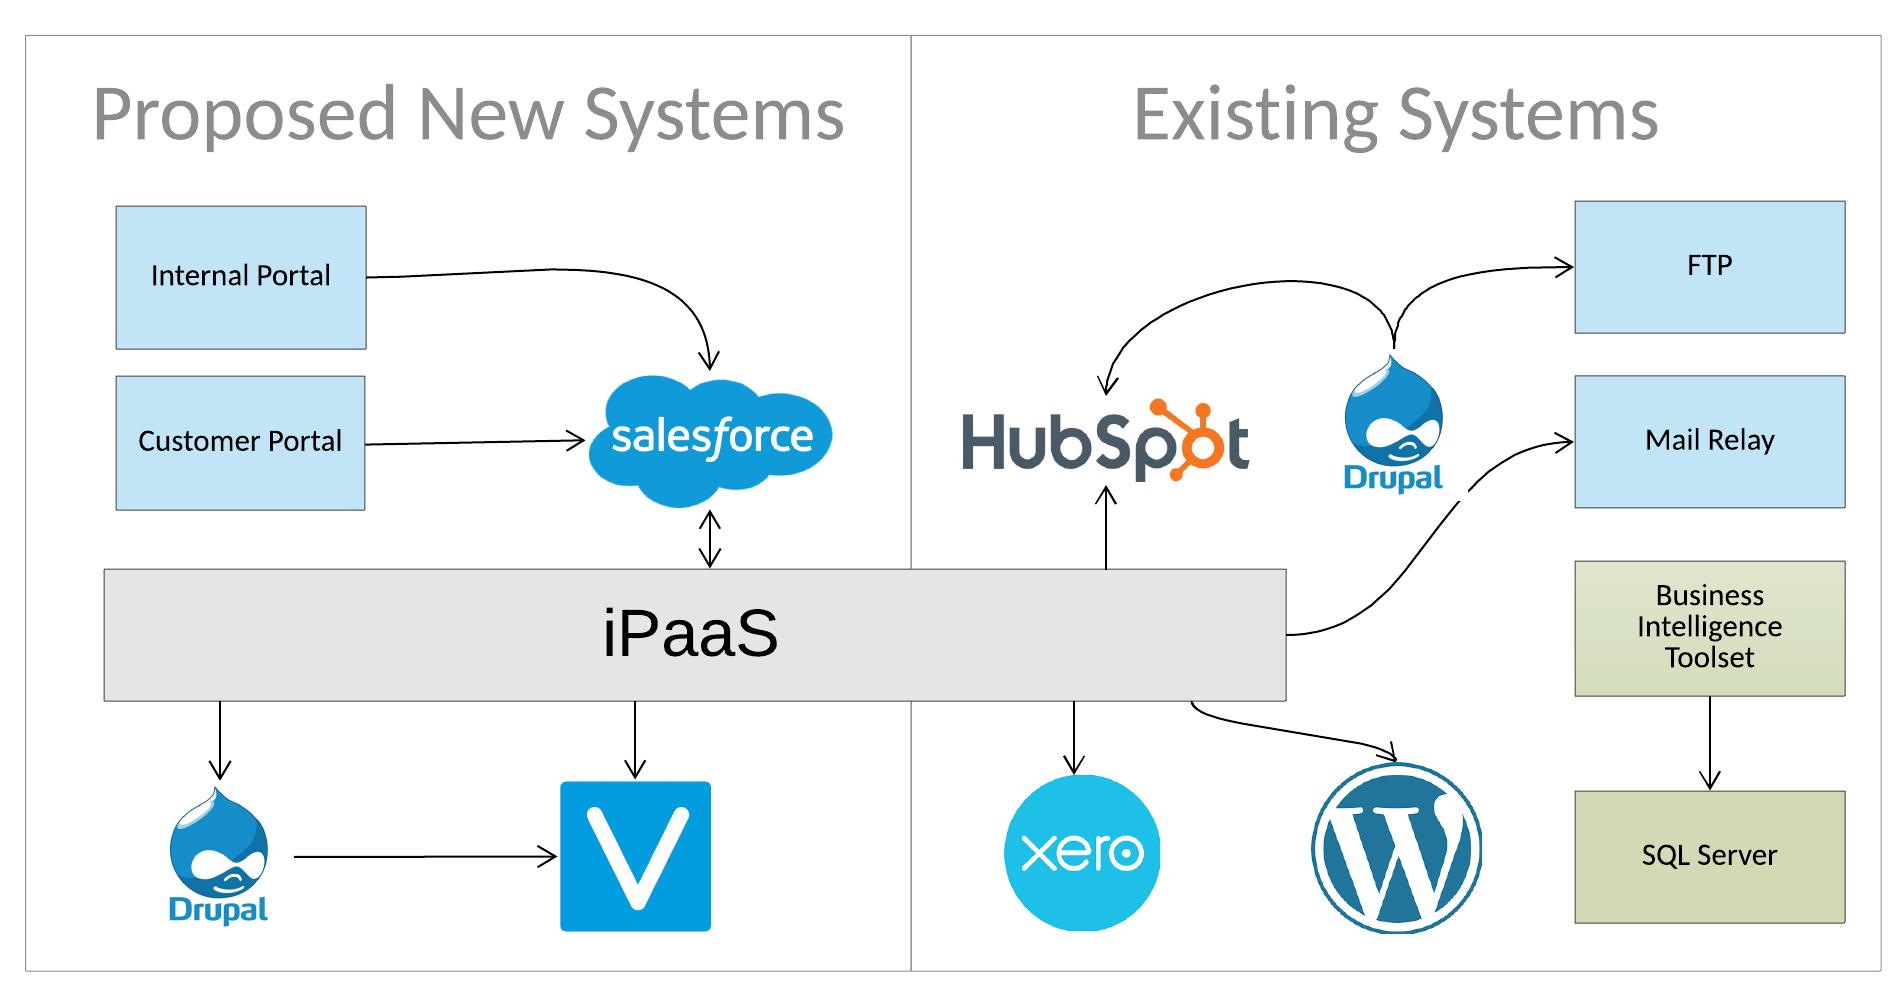 Product Architecture_V6 - Architecture Overview